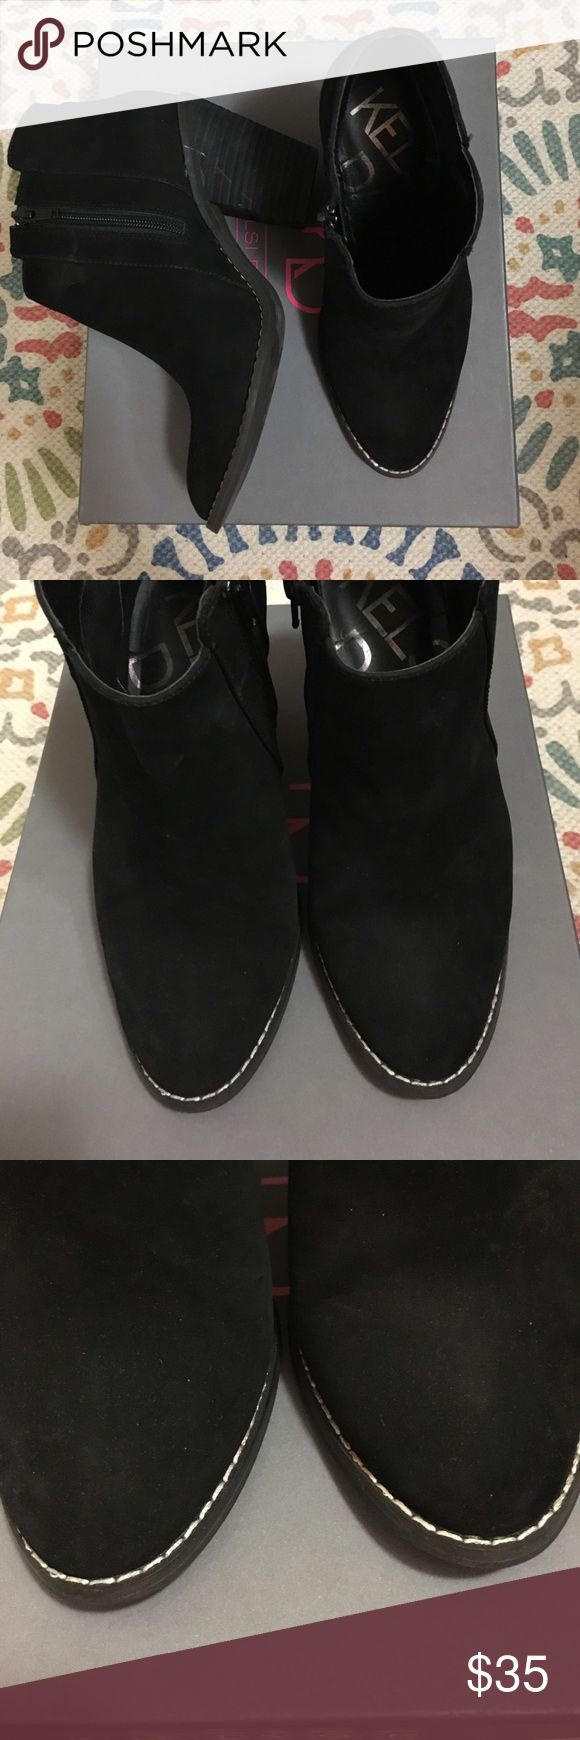 Kelsi Dagger Jaegger Booties in Black Nubuck Kelsi Dagger Jaegger booties in black nubuck, gently worn a few times, please check pictures for signs of wear Kelsi Dagger Shoes Ankle Boots & Booties